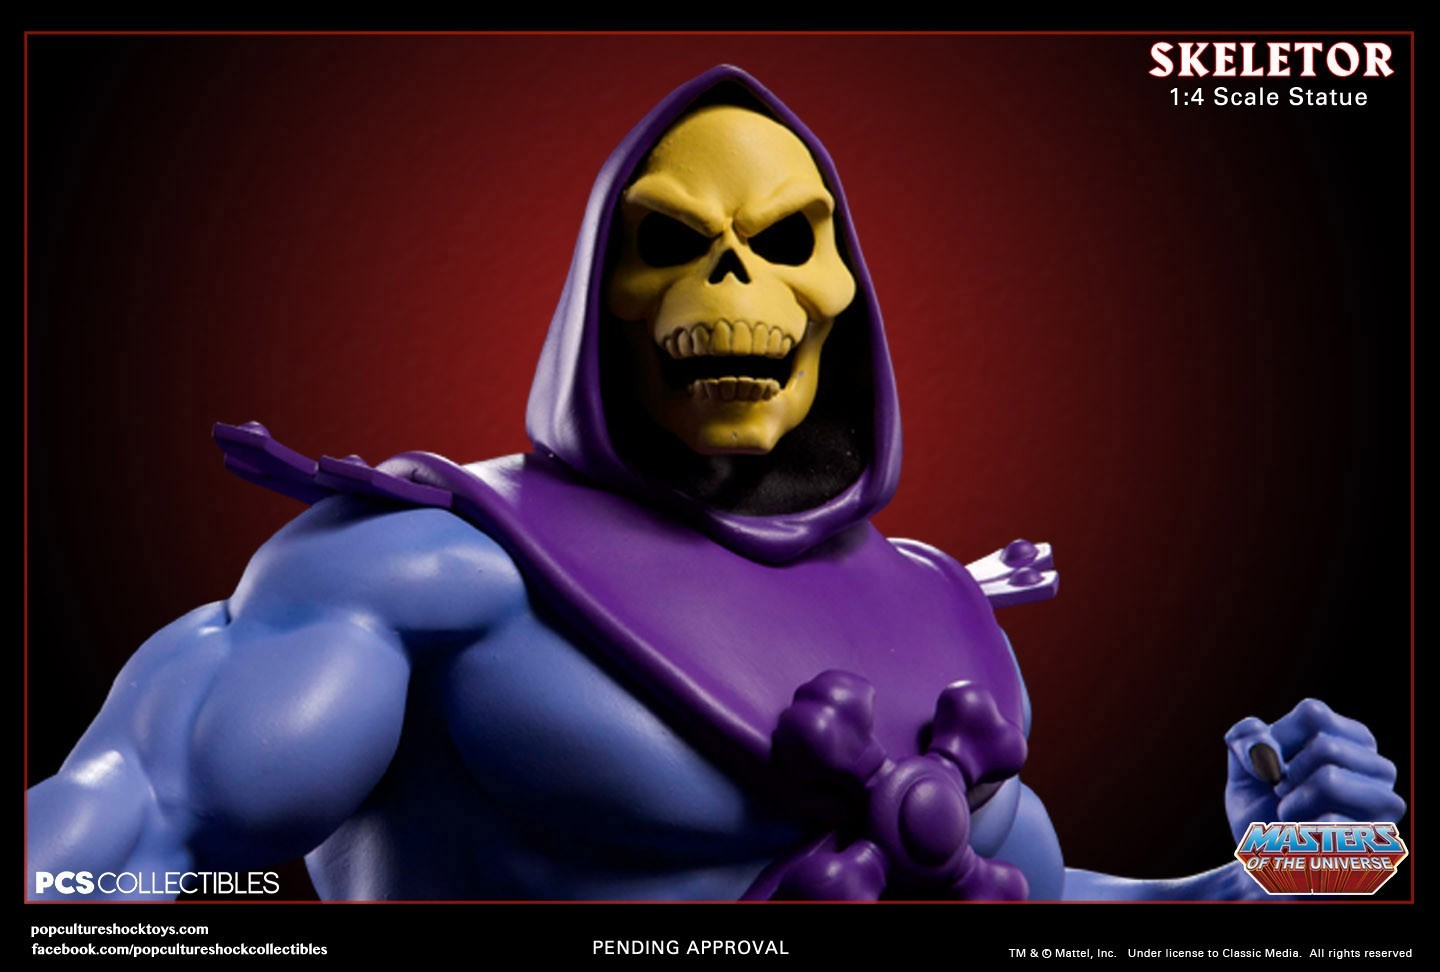 Alejandro pereira skeletor media q 1